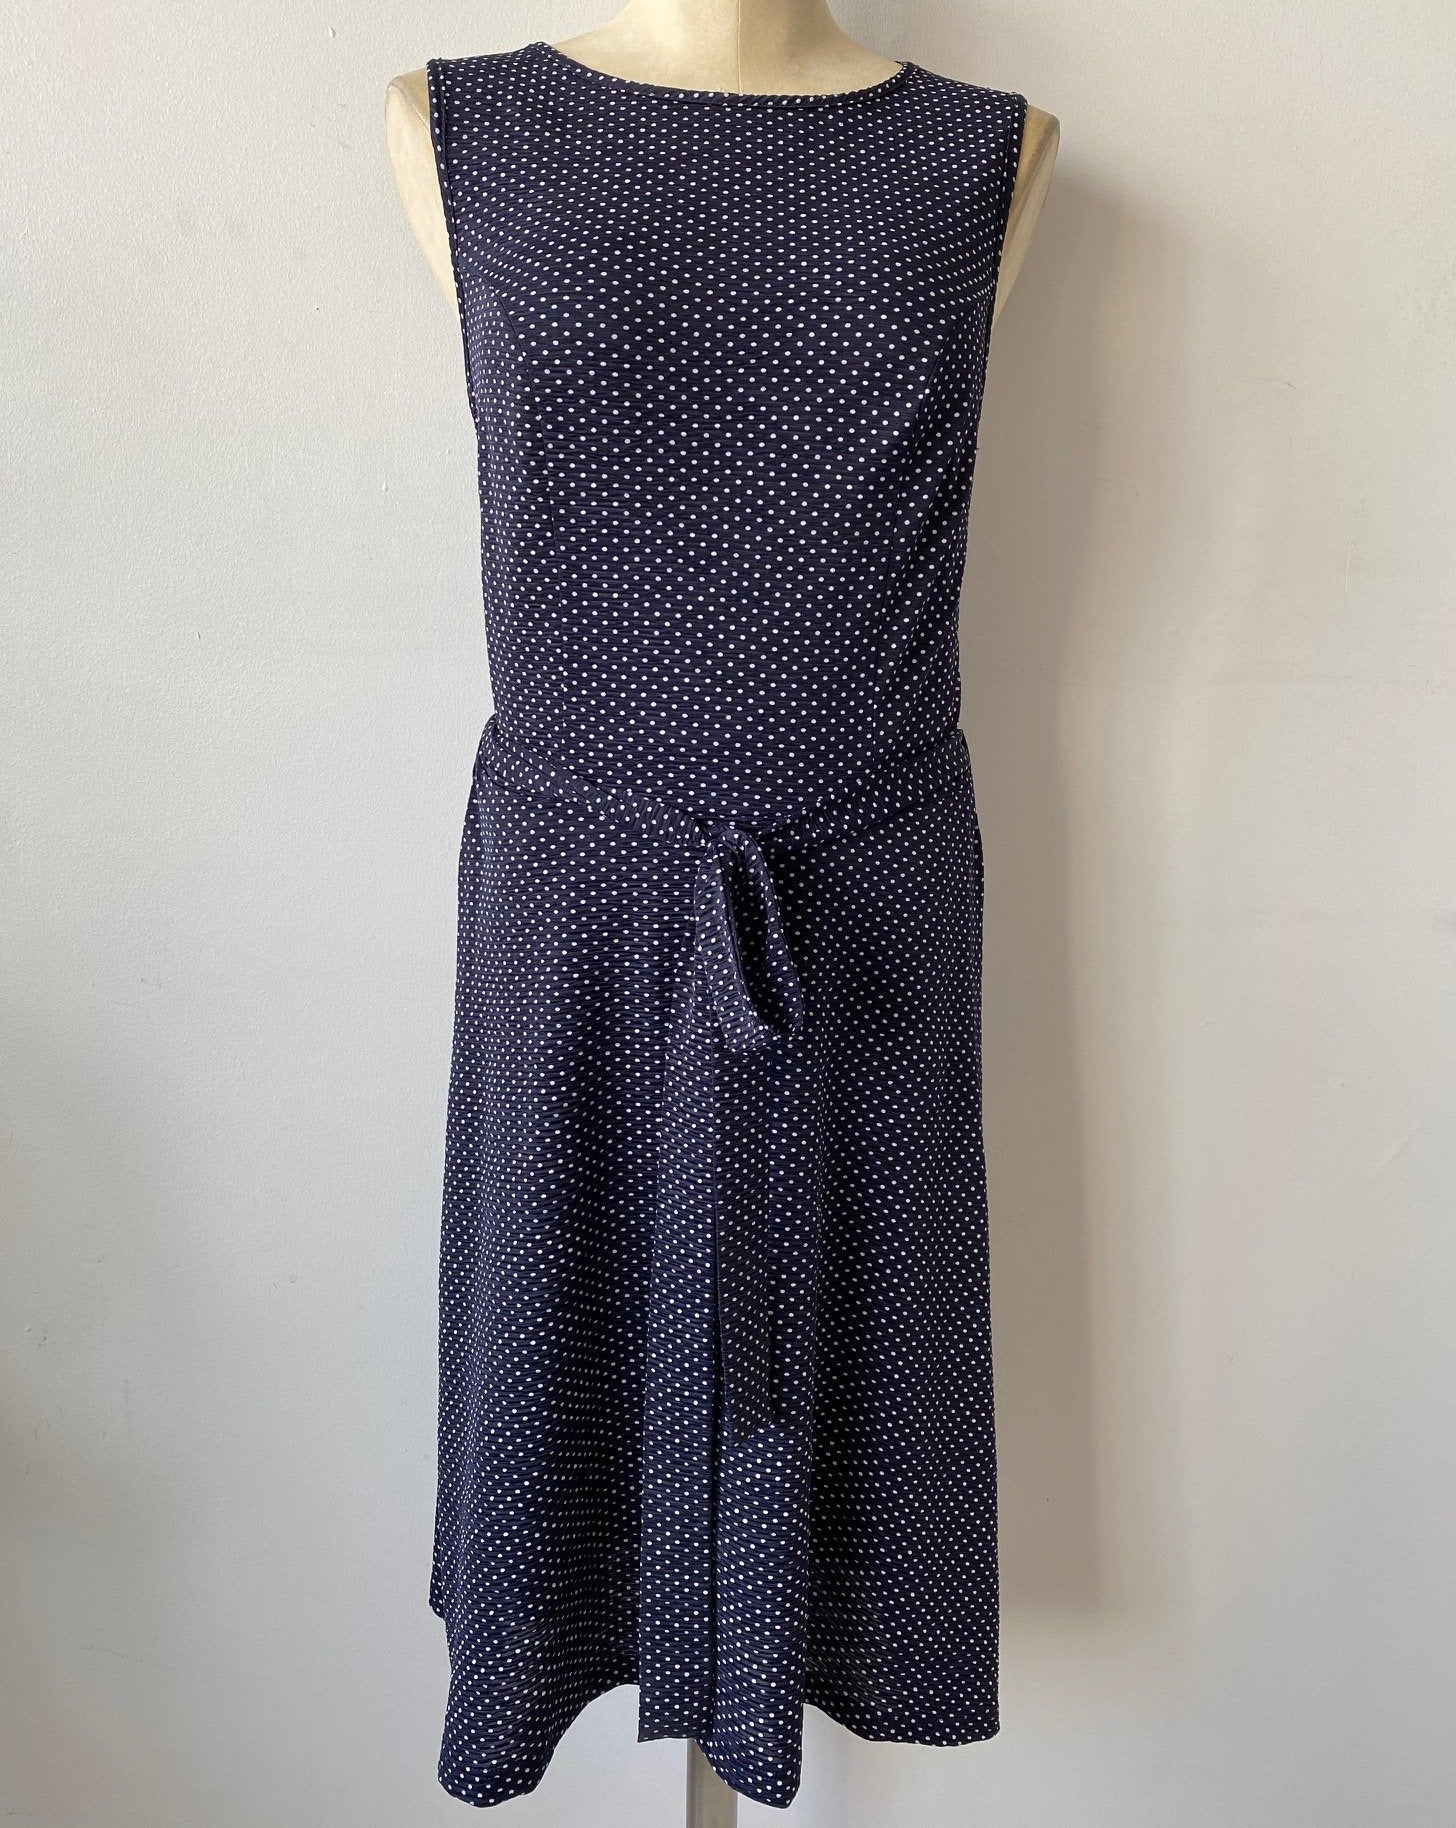 VINTAGE DOTS Fit and Flare Dress